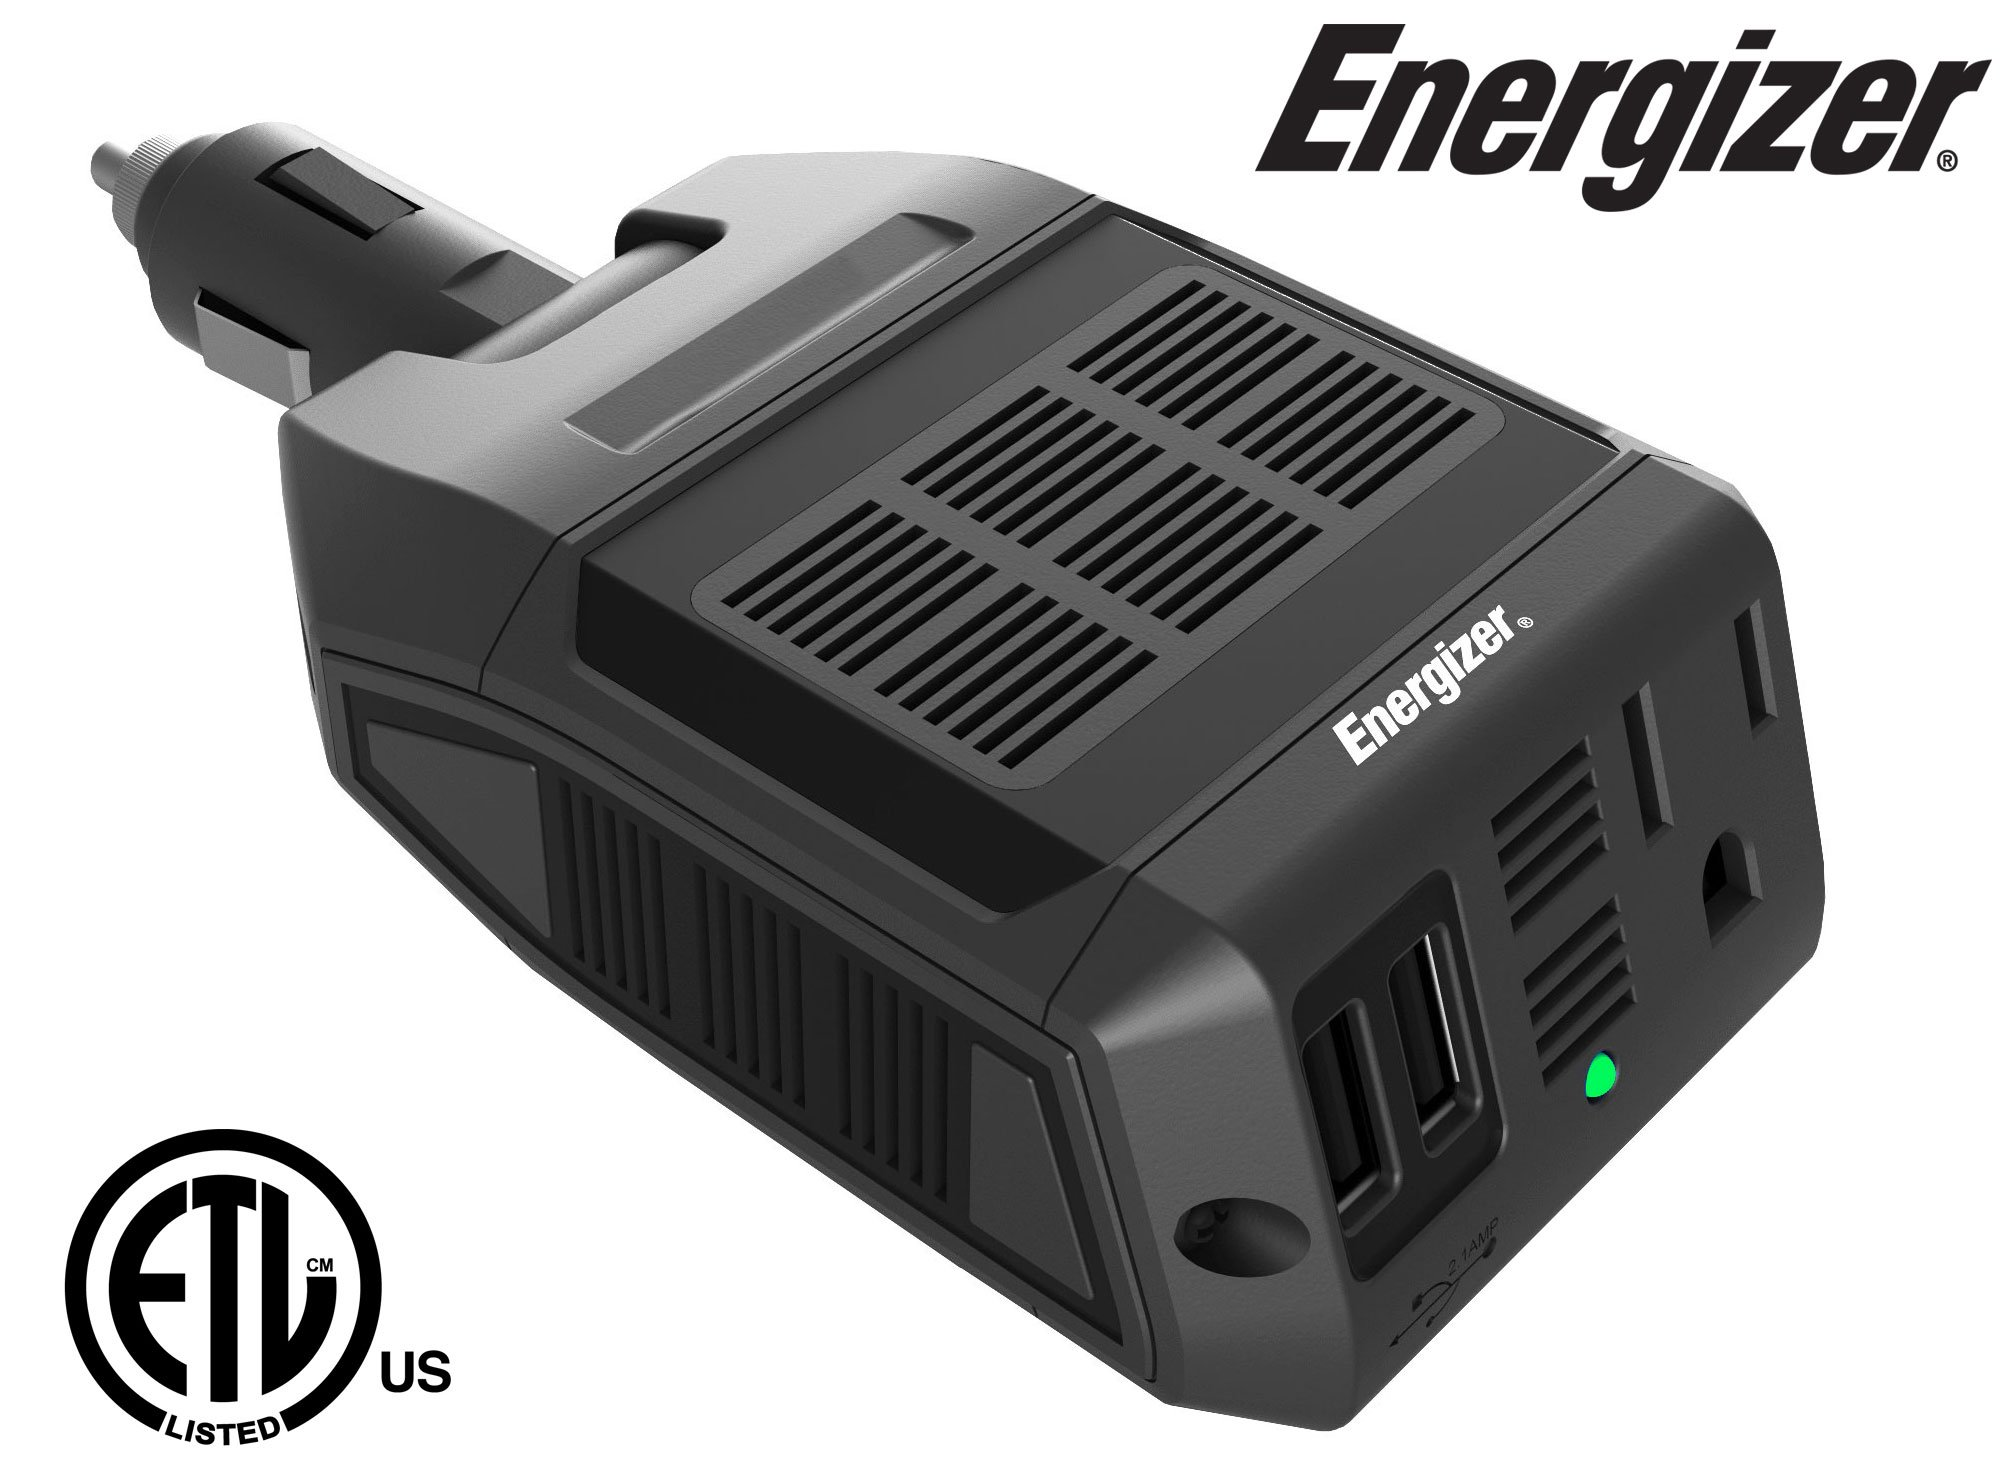 Energizer Power Inverter Series